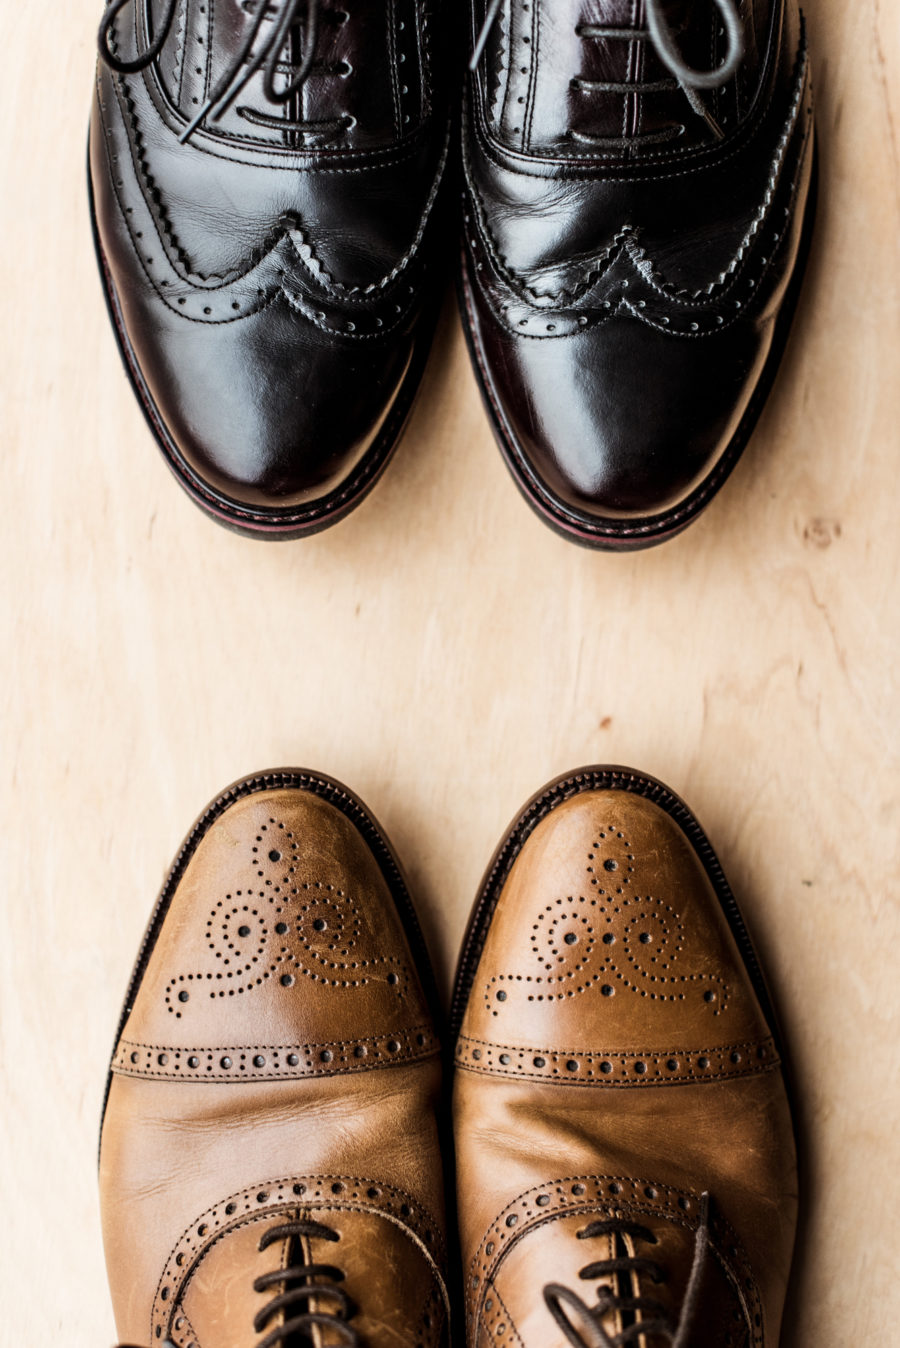 Top view of black and brown pairs of leather shoes on wooden floor